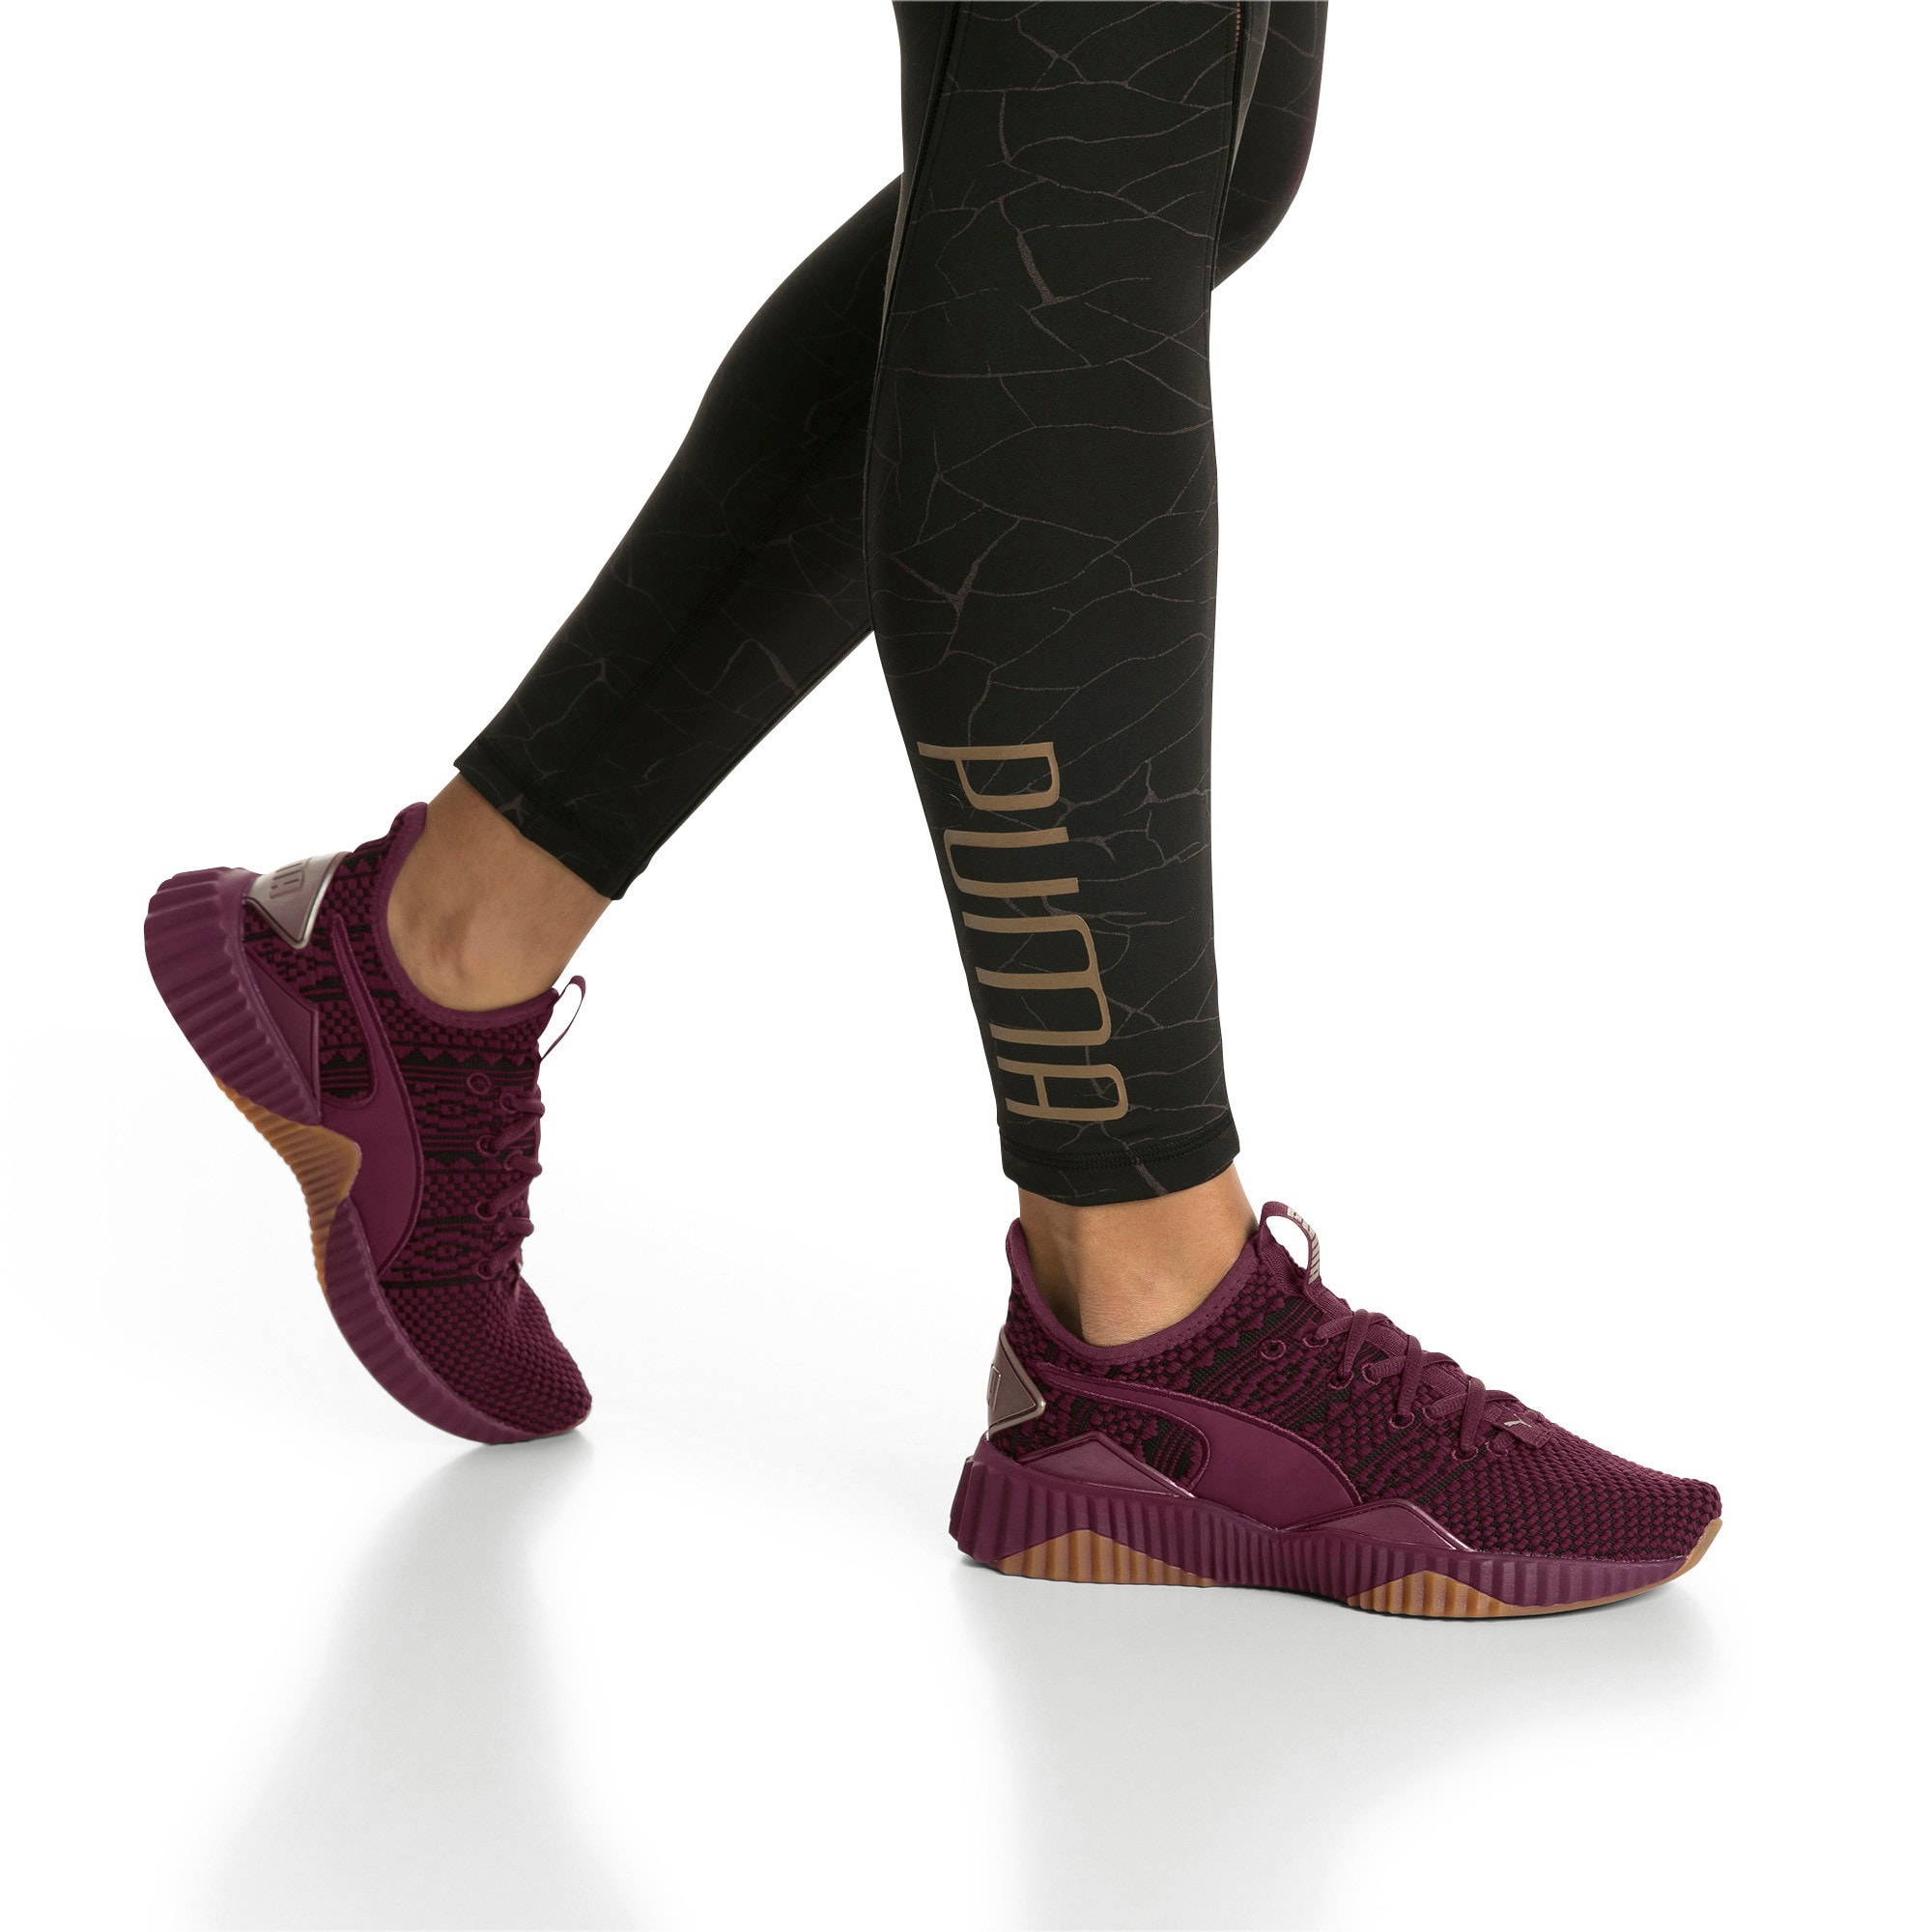 Defy Luxe Women's Training Shoes